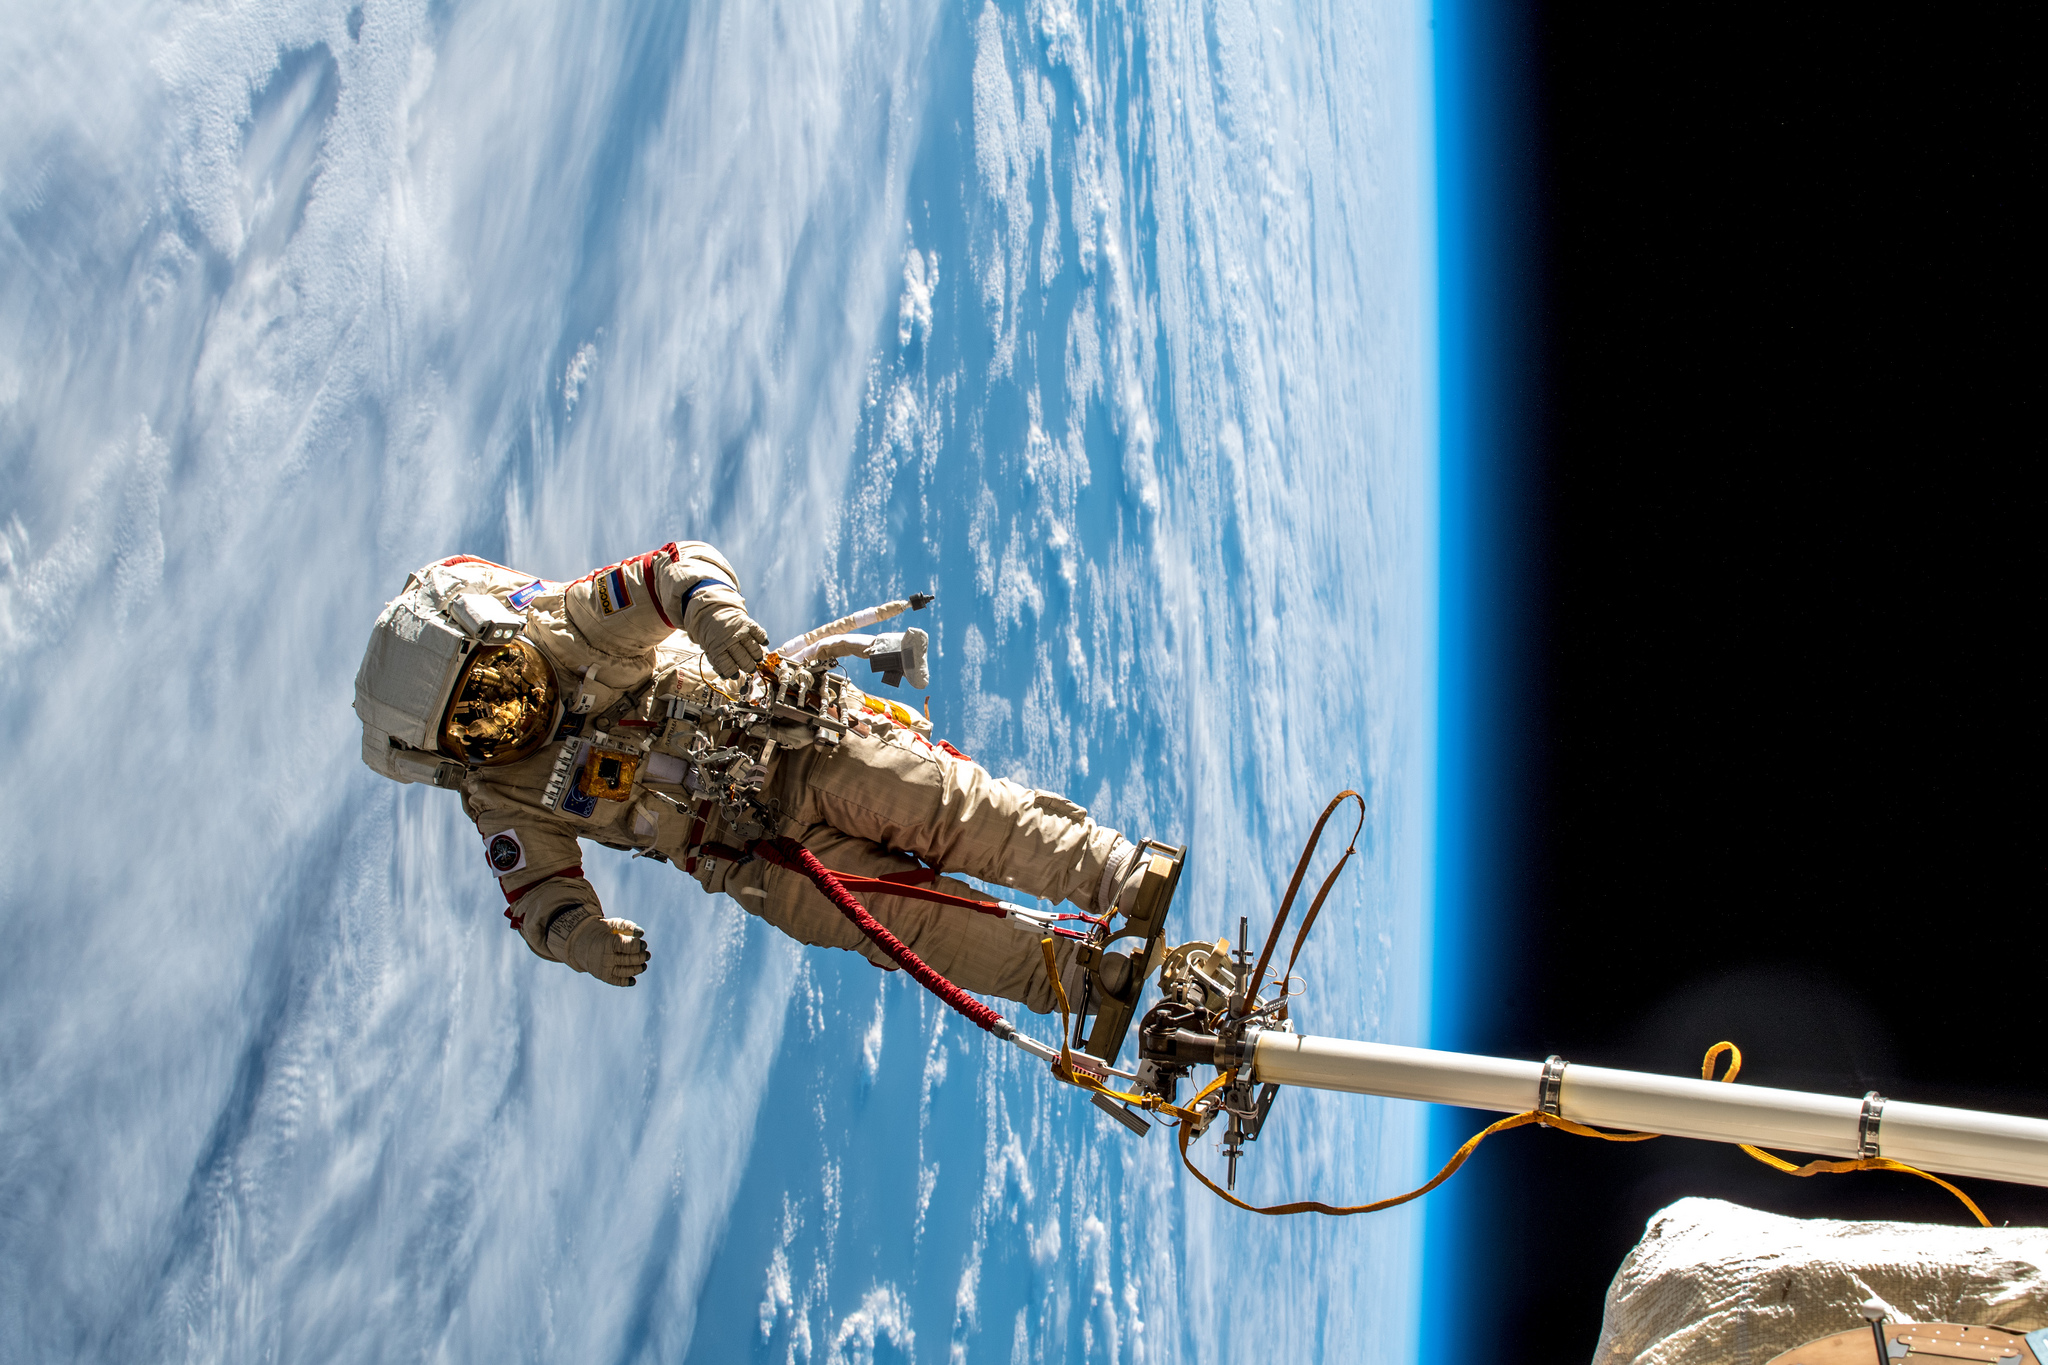 planet clouds earth alexander gerst astronaut iss atmosphere photography space